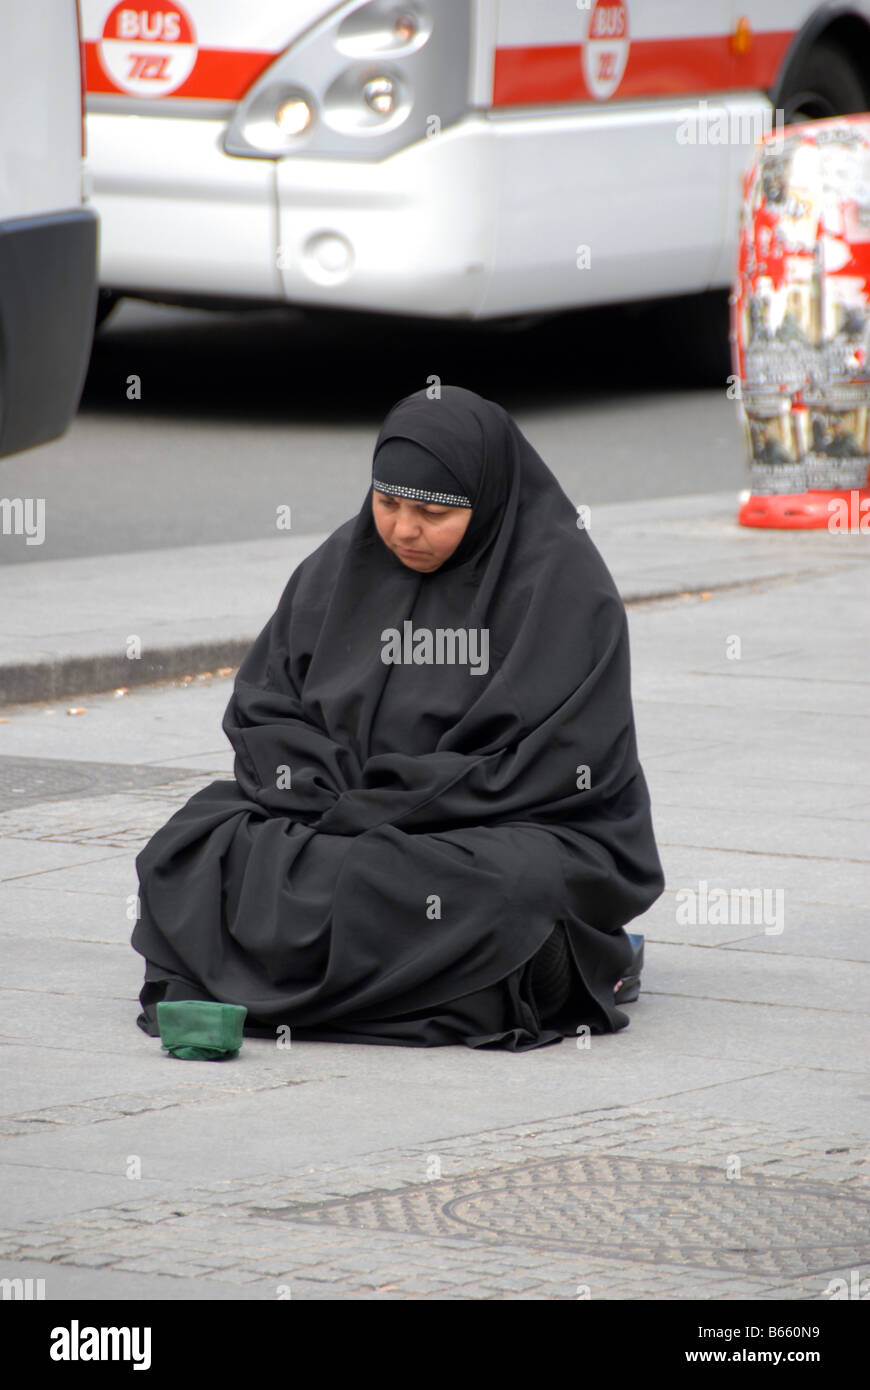 muslim single women in lyon station Social reproduction in france: religious dress laws  2011 and has disproportionately impacted muslim women  the women targeted were divorced or single, .